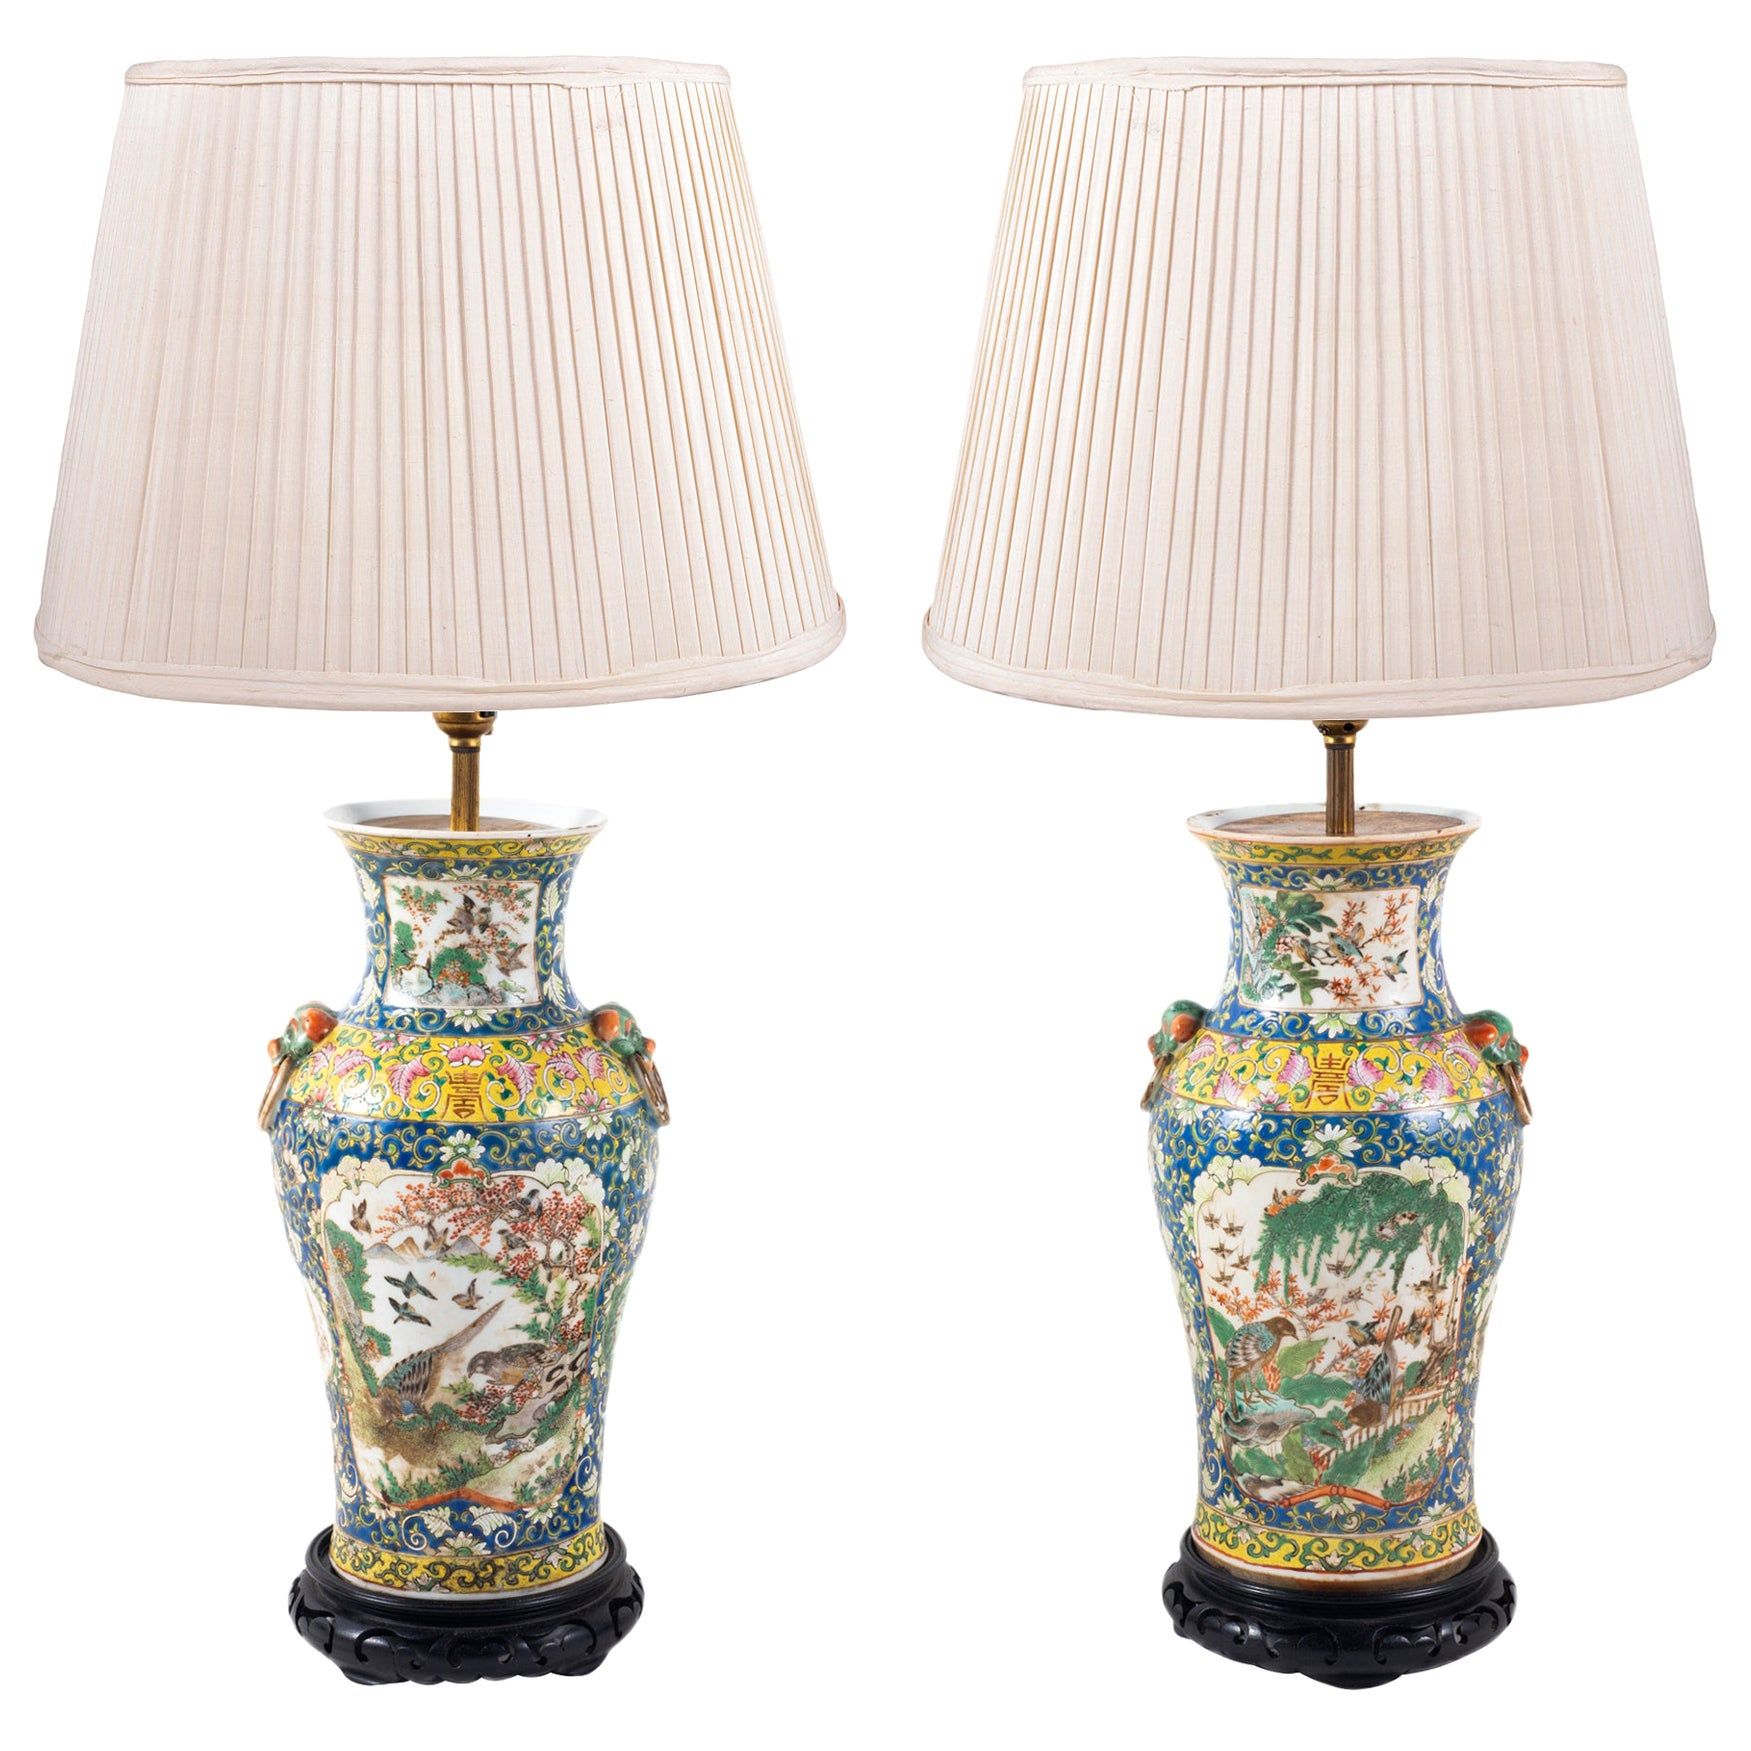 Pair of 19th Century Chinese Cantonese Porcelain Vases Lamps